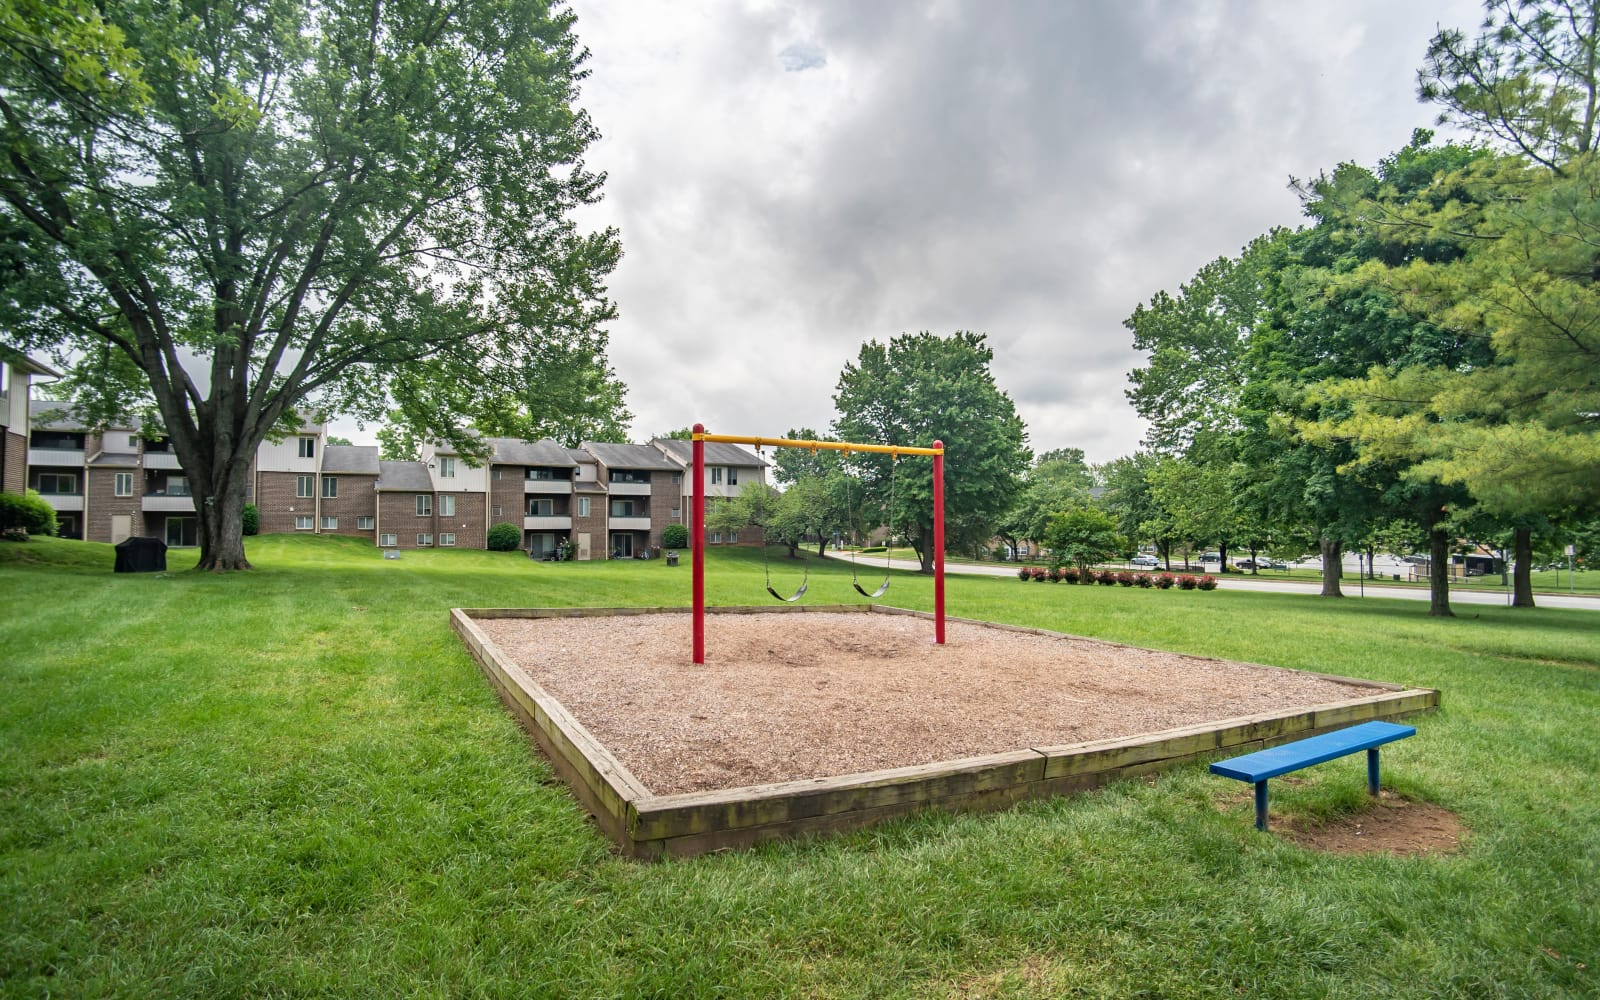 Swings with a bench nearby at Hunt Club Apartments in Cockeysville, Maryland